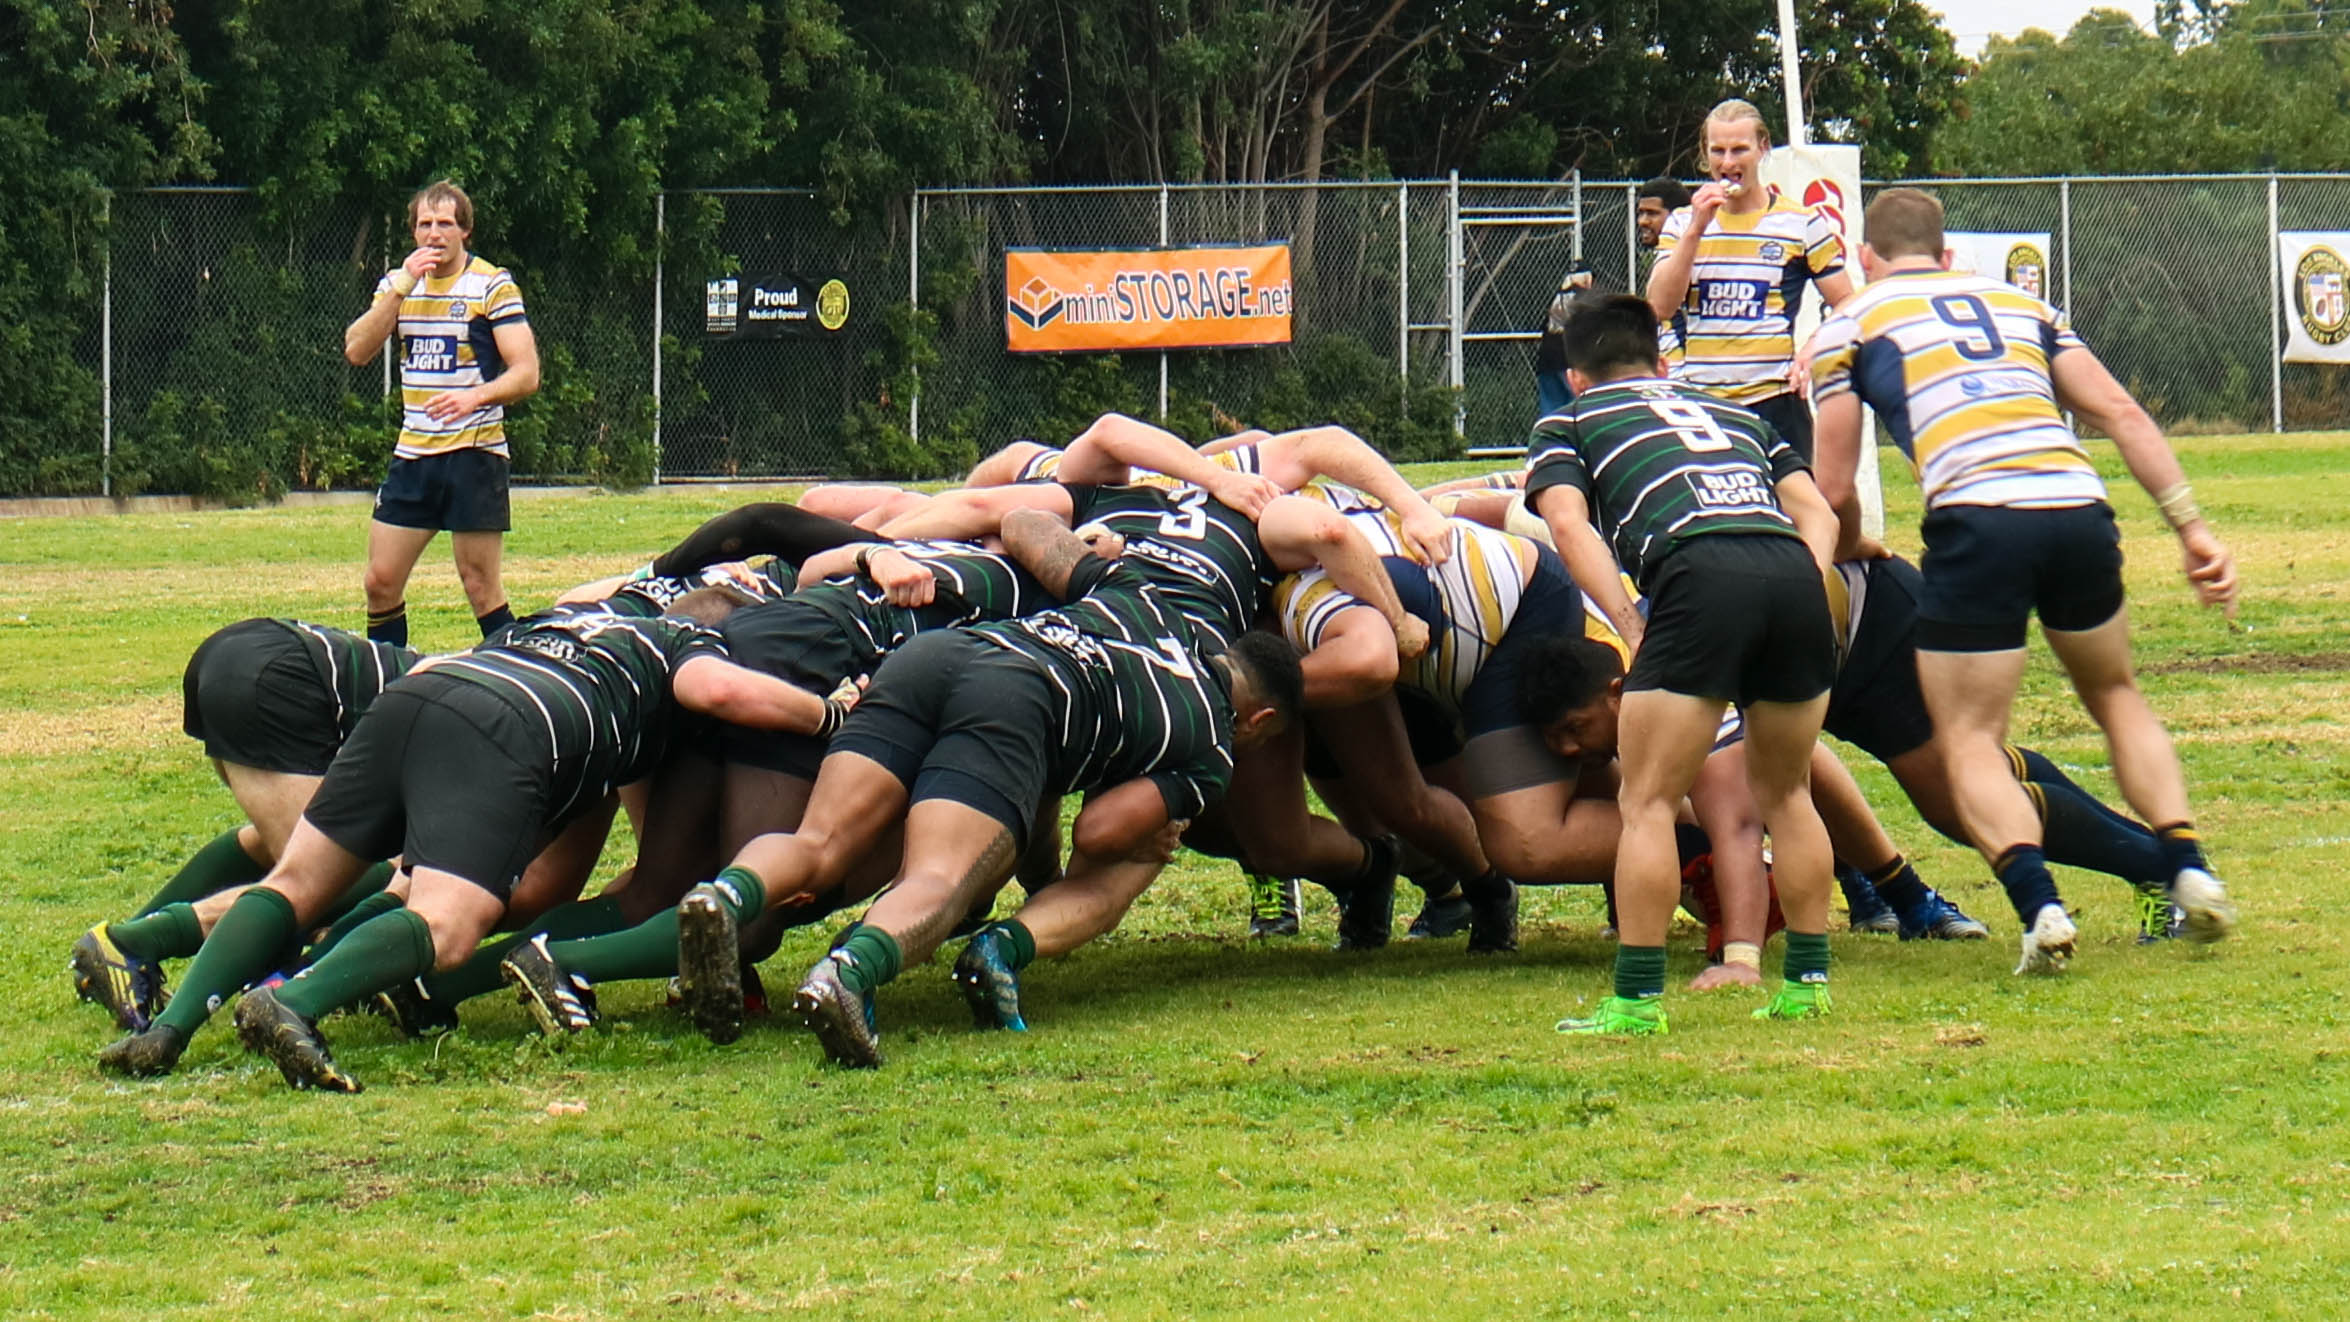 The Santa Monica Dolphins rugby team form a scrum with their Belmont Shore opponents due to a minor infringement in Palos Verdes California on Saturday, March 10, 2018. The Santa Monica Dolphins would go on to lose the game 3-19 against Belmont Shore. (Photo By: Jennifer Nystrom)